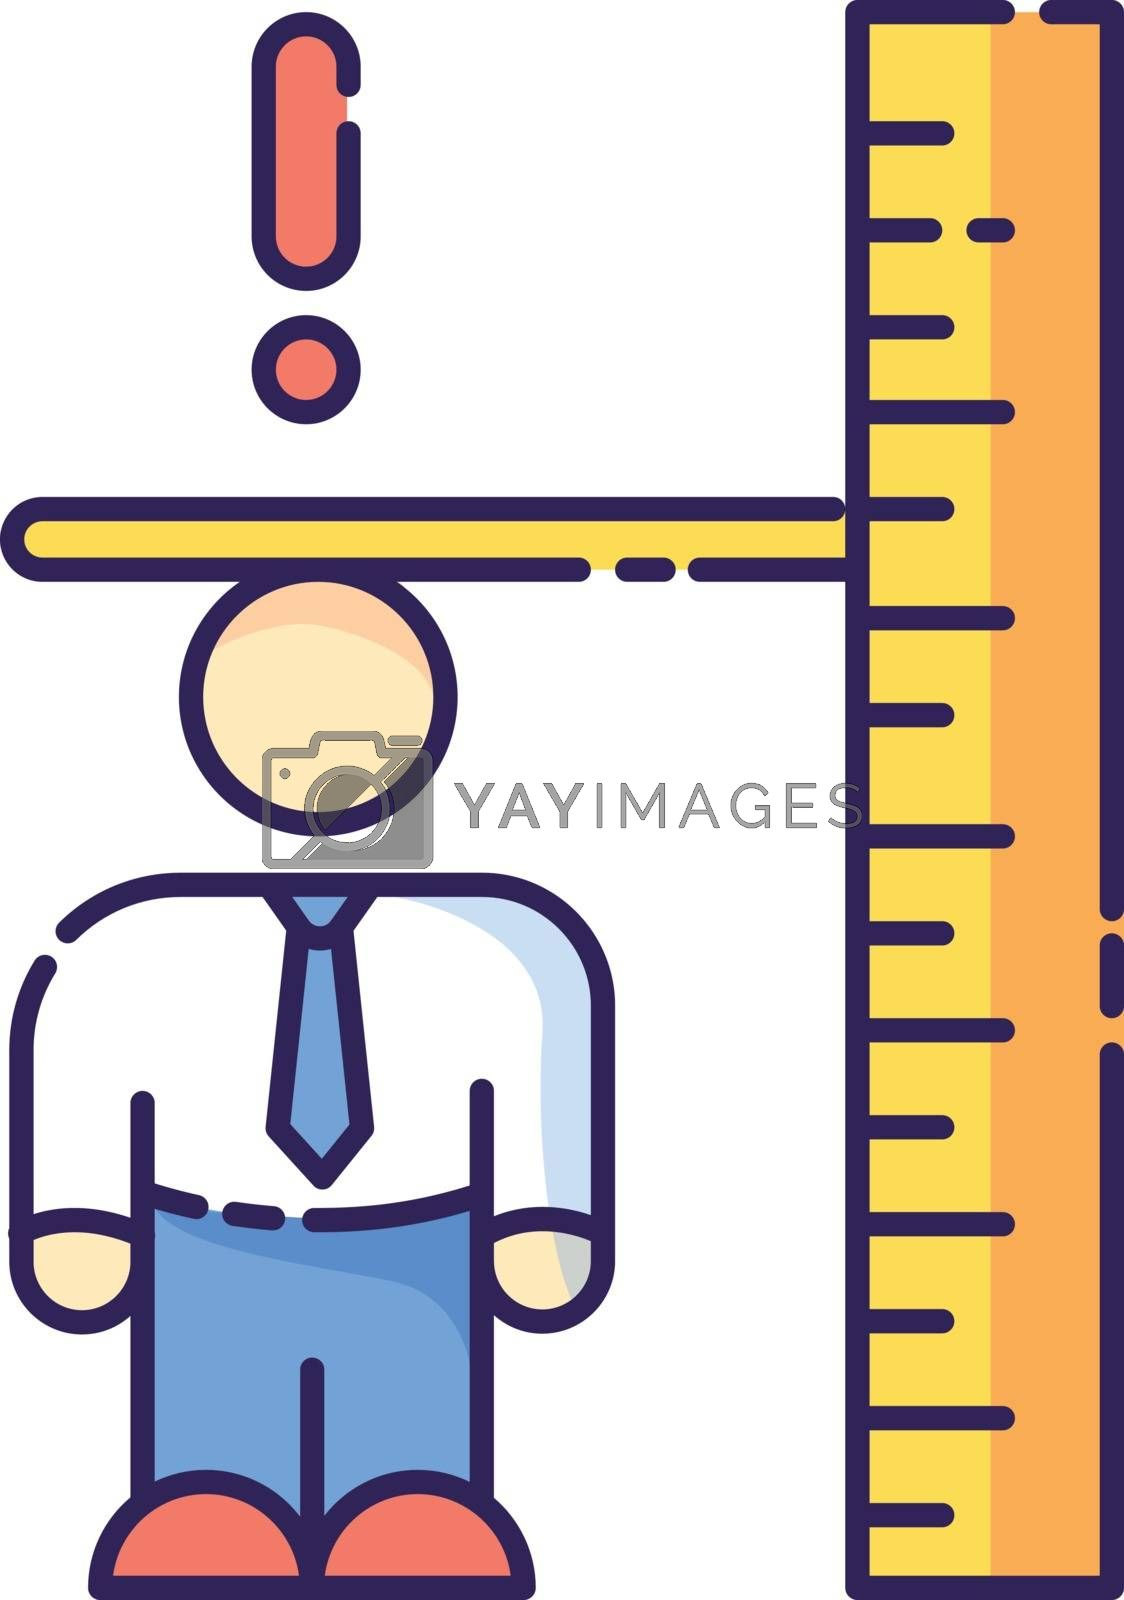 Dwarfism RGB color icon. Chronic genetic condition. Person with short height. Measurement of businessman. Inclusive workplace for handicapped person. Worker with disorder. Isolated vector illustration